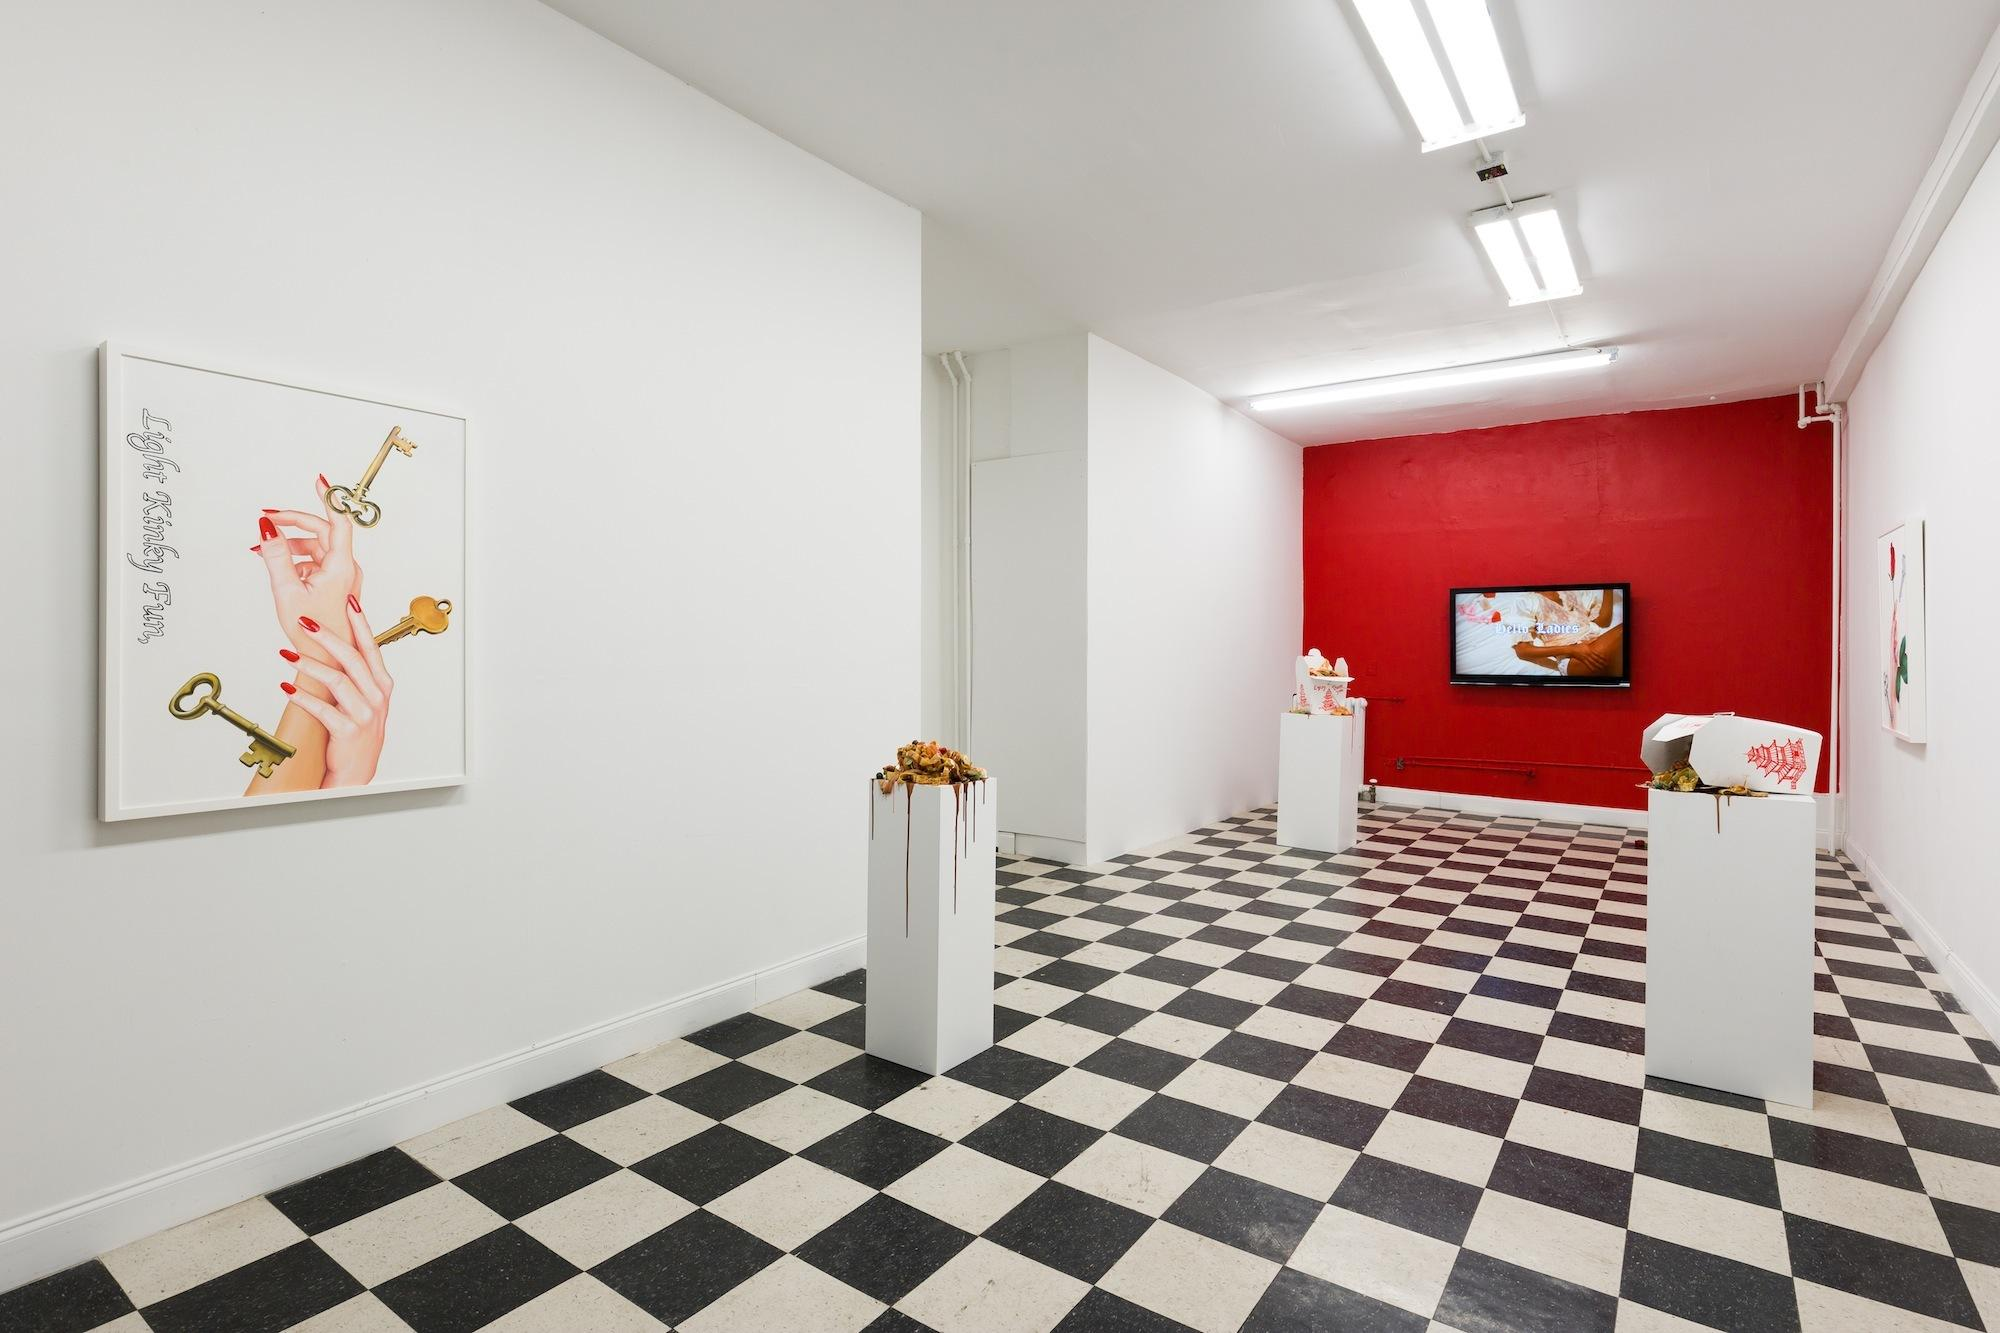 Cheating And Chow Mein At Chloe Wises New Show  Read  I-D-9407